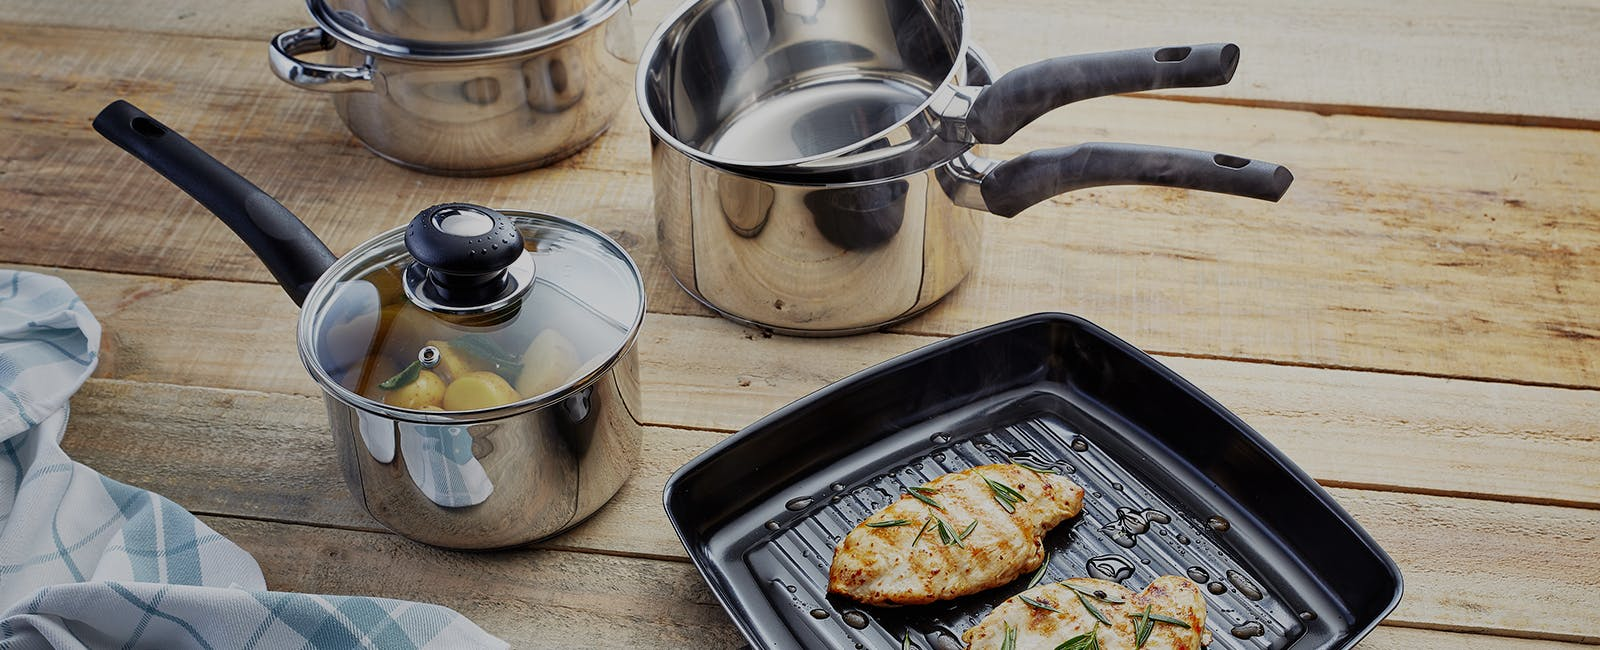 Judge Essentials cookware - saucepans, steamers, grill pans and more